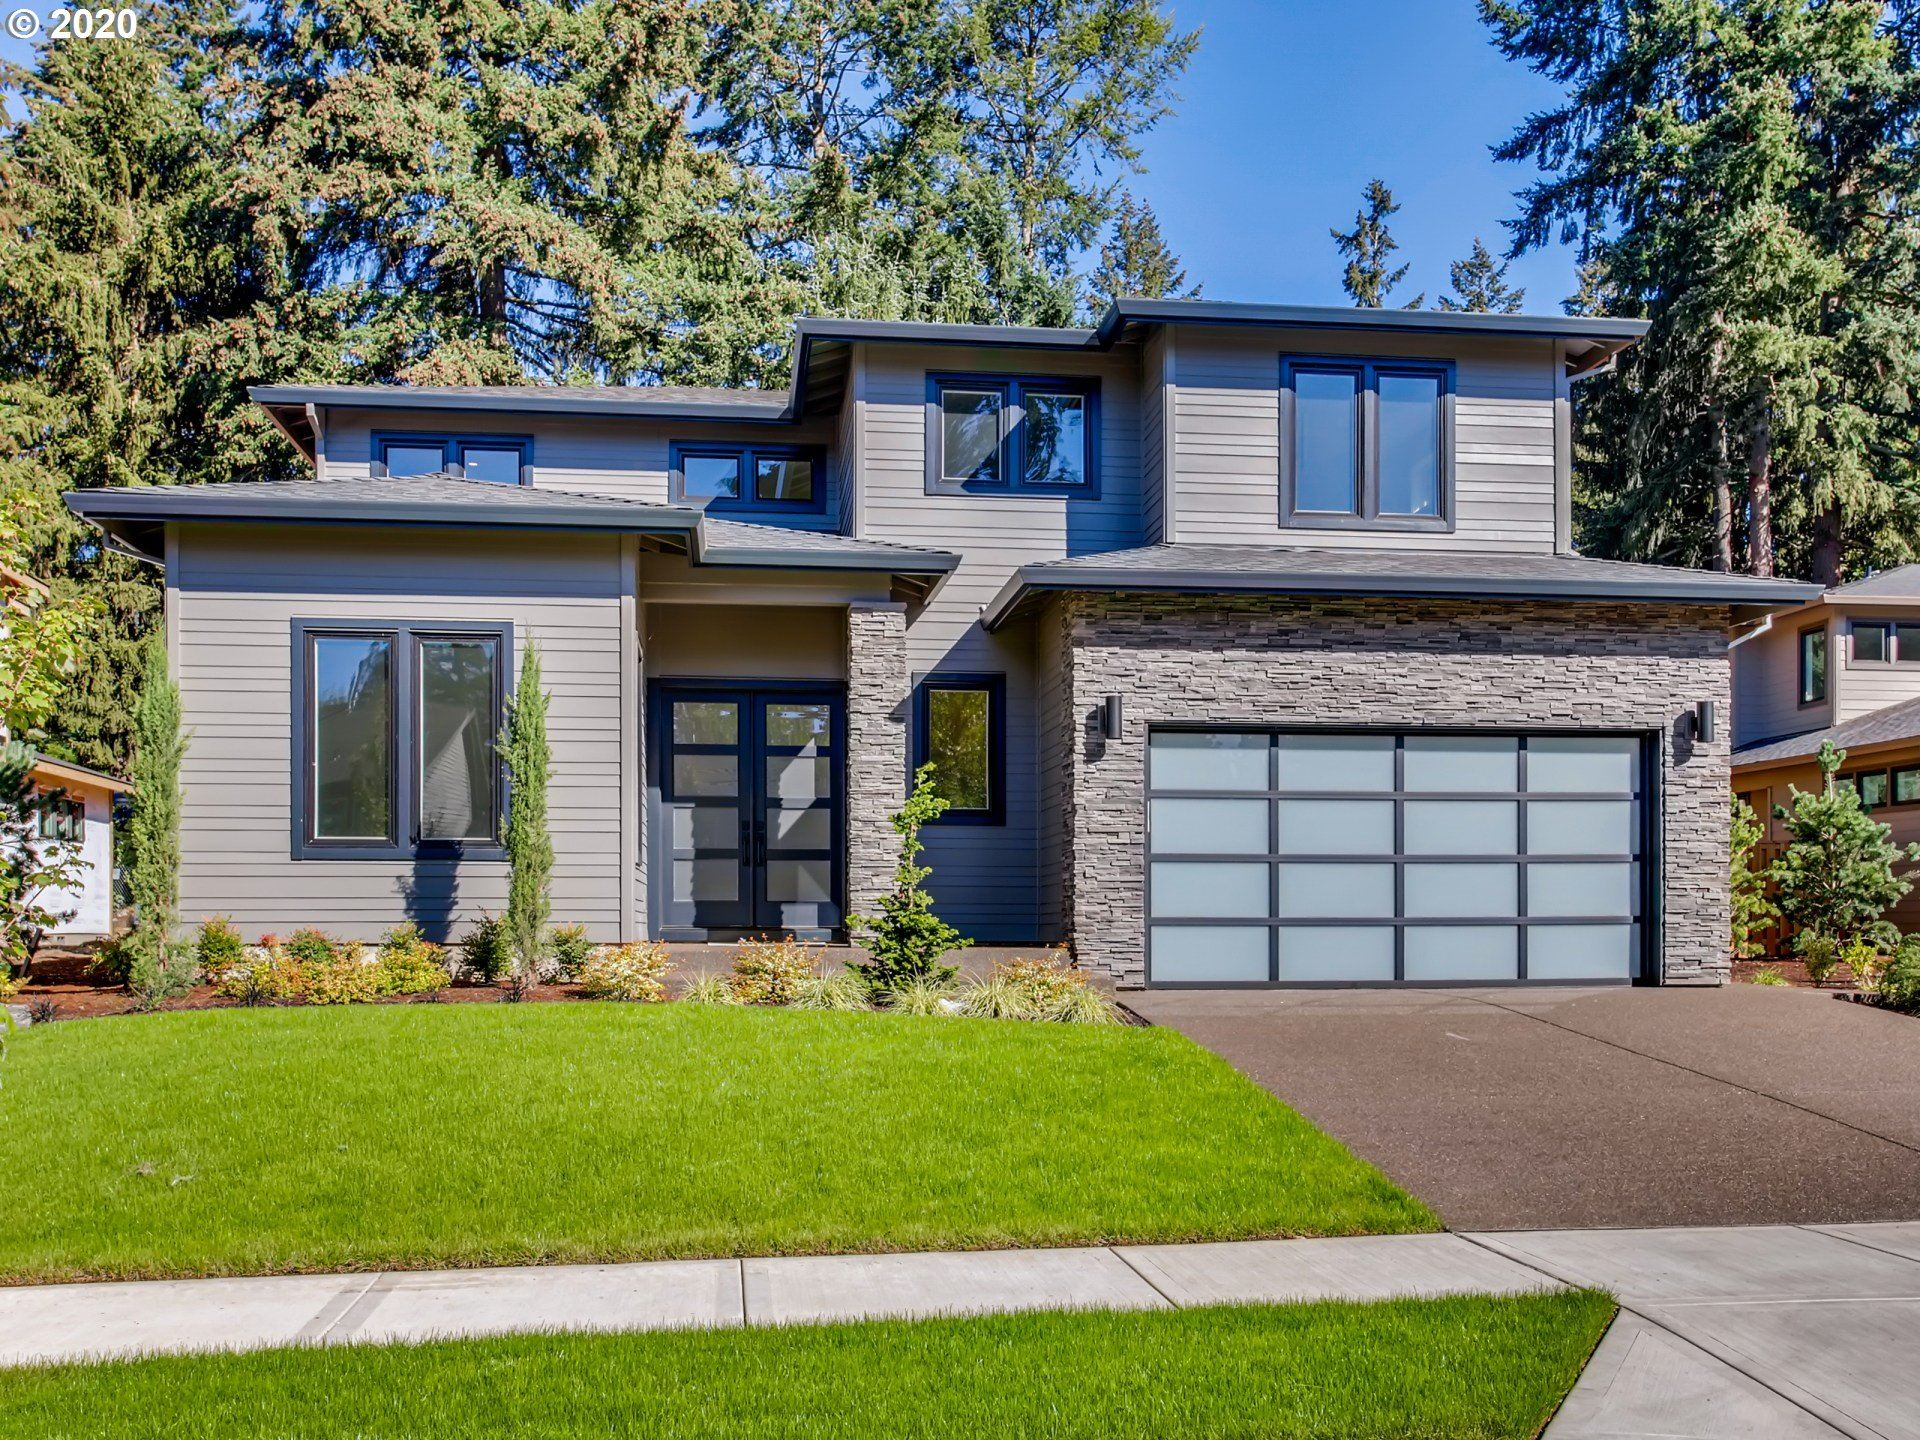 Photo for 6463 Mission CT, Lake Oswego, OR 97035 (MLS # 20229203)